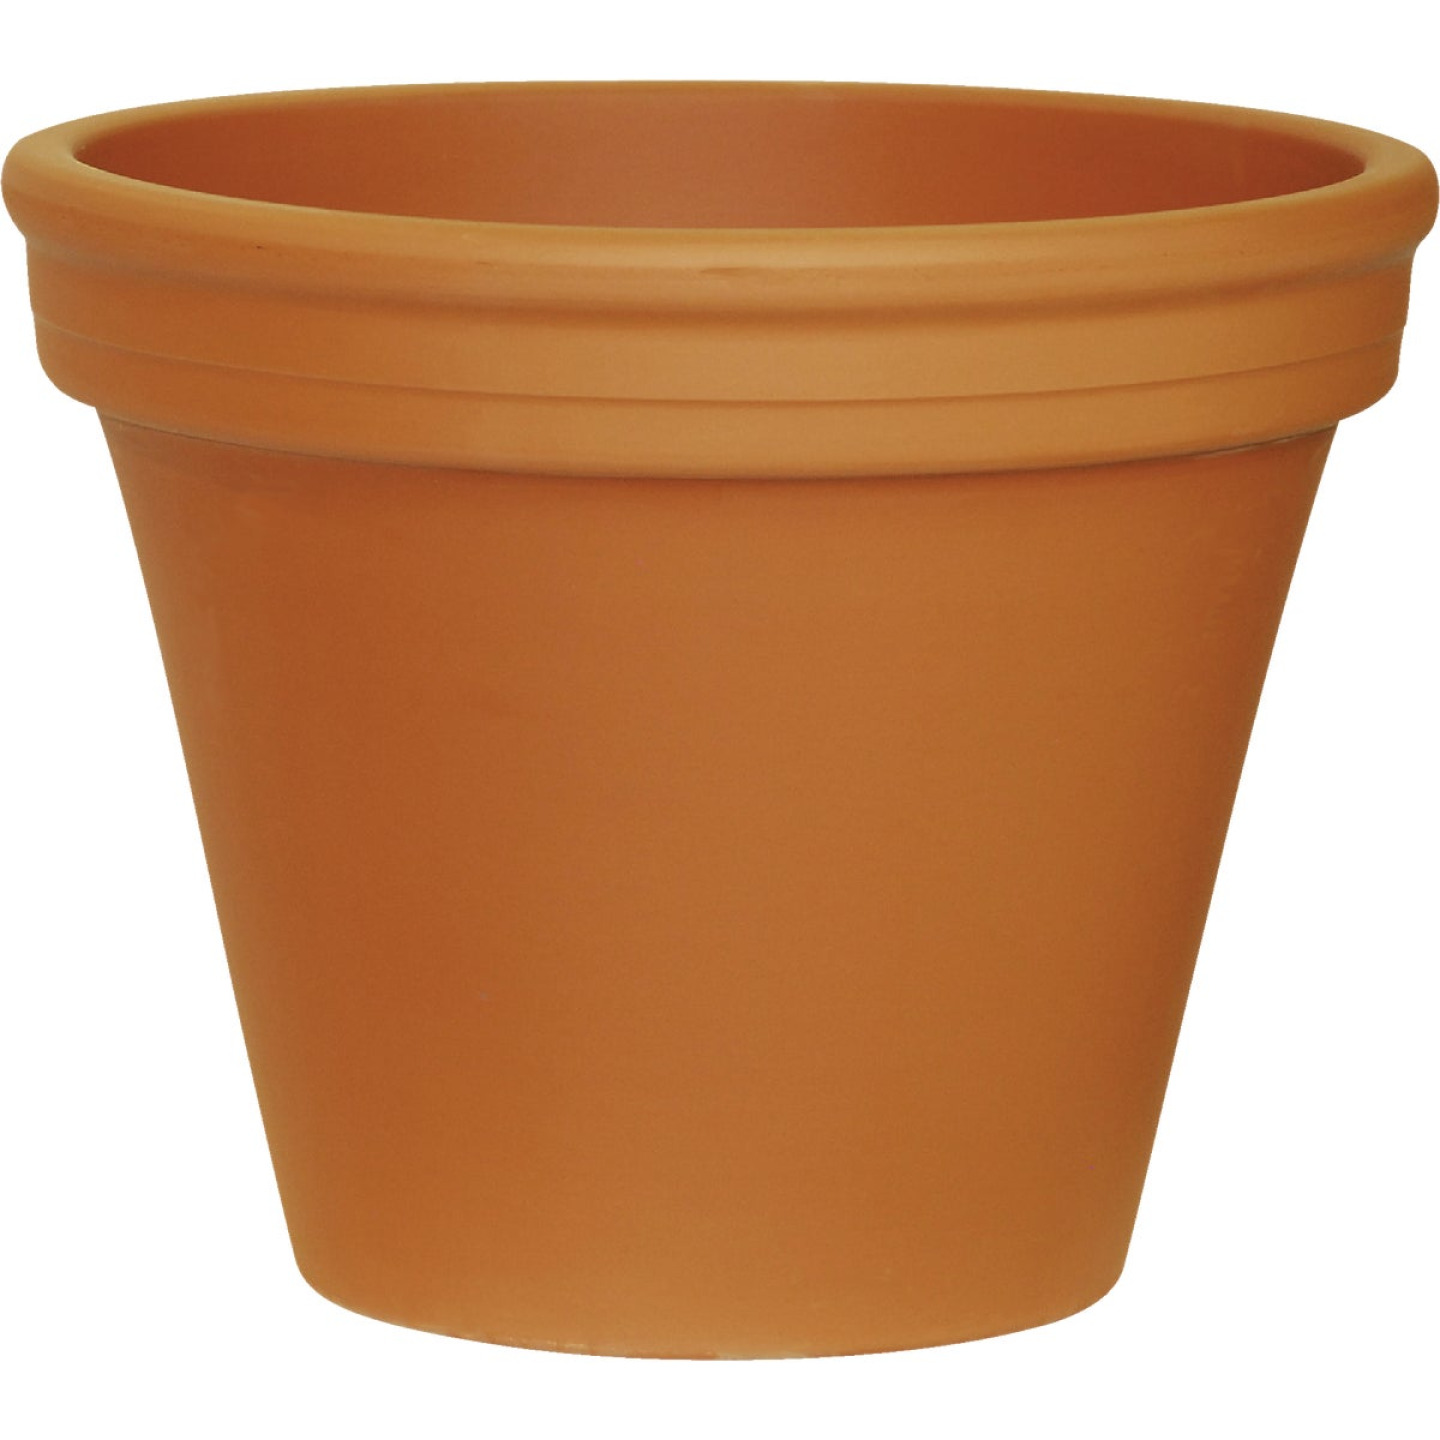 Ceramo 8-3/4 In. H. x 10-1/4 In. Dia. Terracotta Clay Standard Flower Pot Image 1